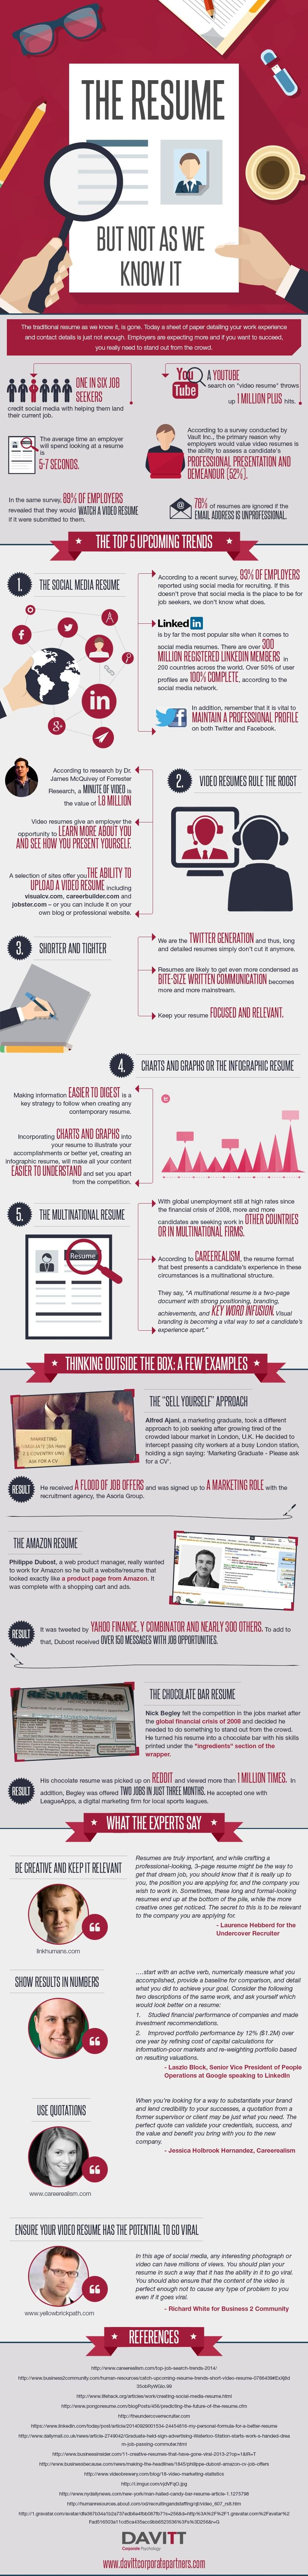 How to: Keep Up with Changing Resume Trends (Infographic)